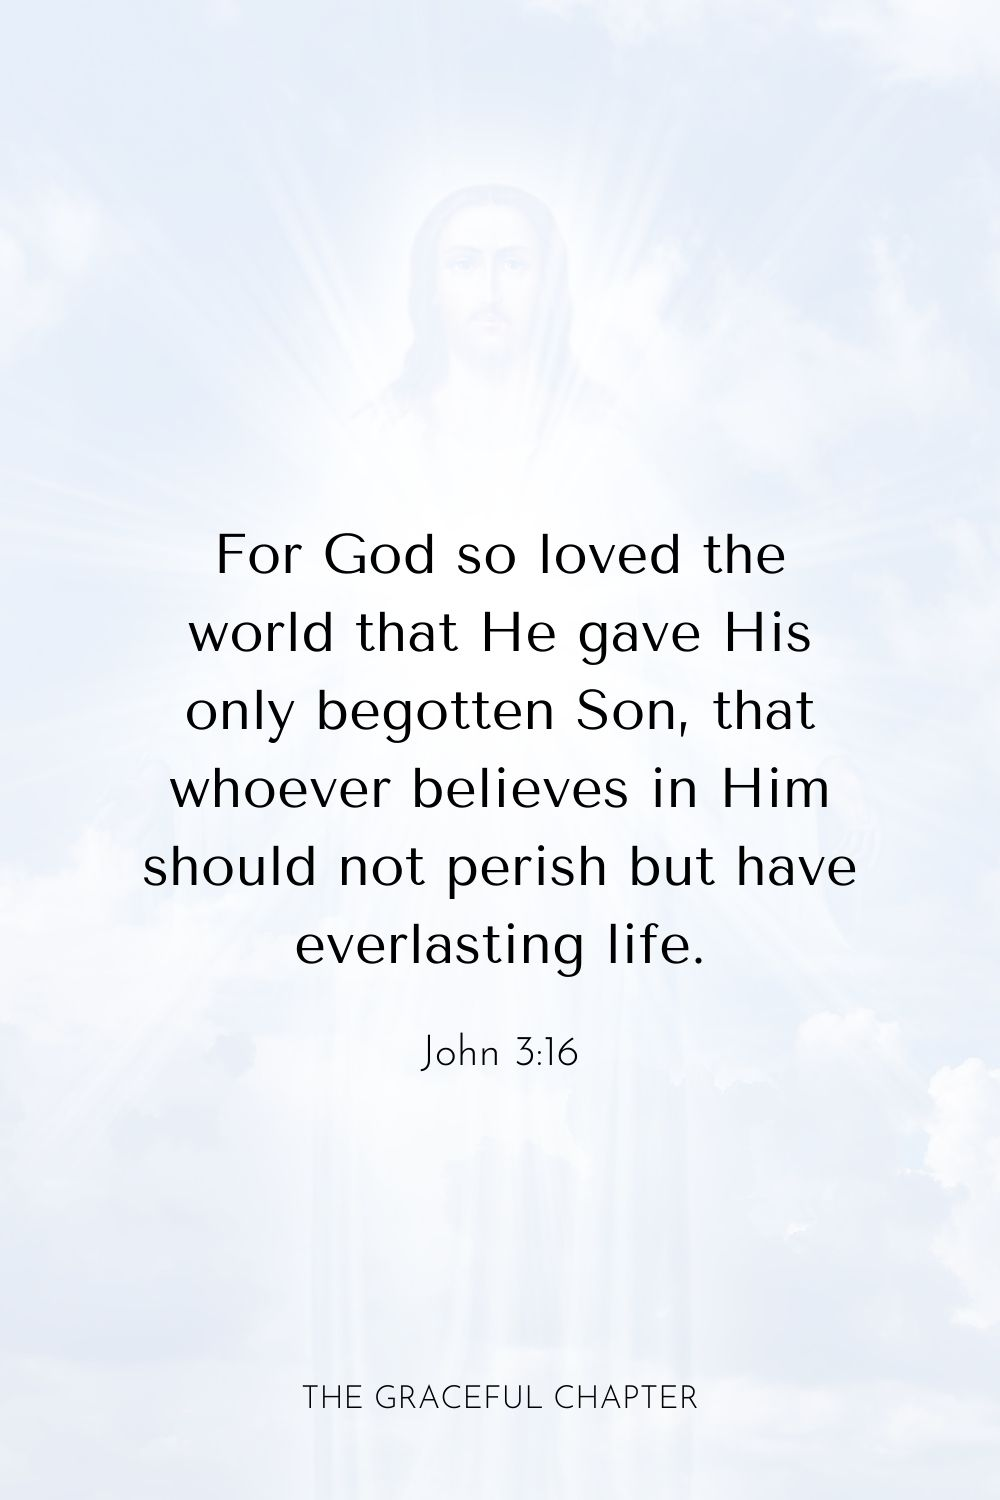 For God so loved the world that He gave His only begotten Son, that whoever believes in Him should not perish but have everlasting life.John 3:16